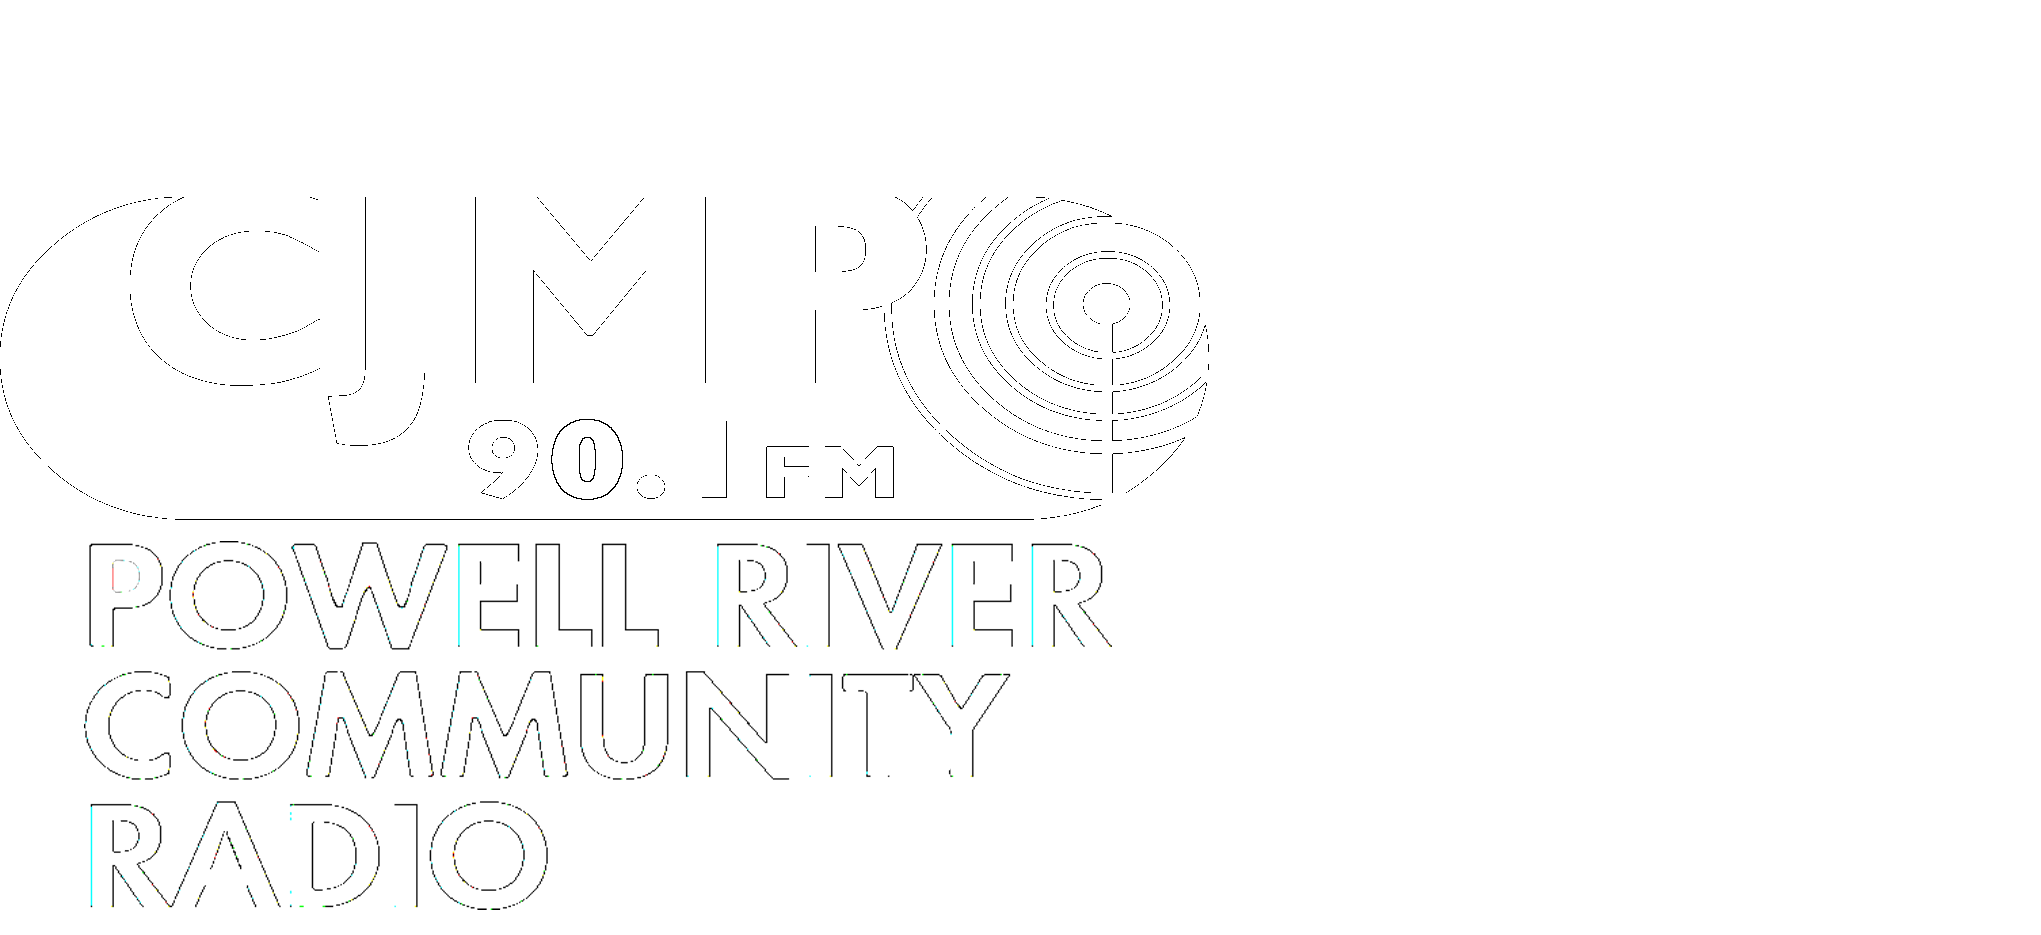 Submit your music | Community Radio for Powell River and